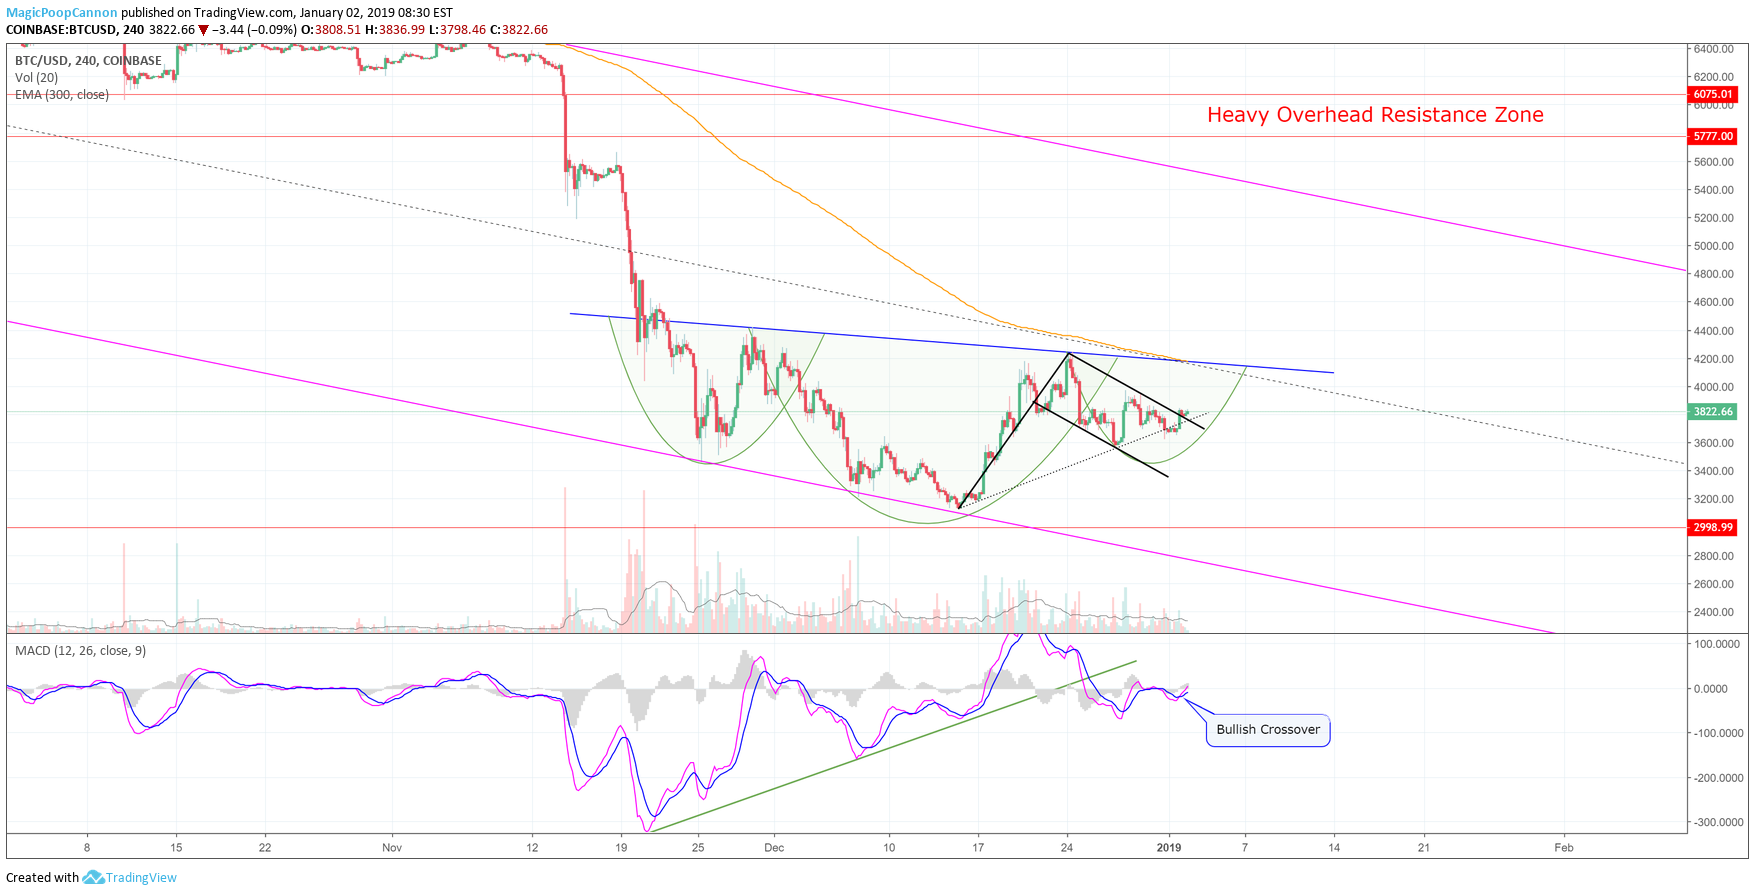 Bullish Bitcoin Price Momentum to Materialize Soon According to These Traders